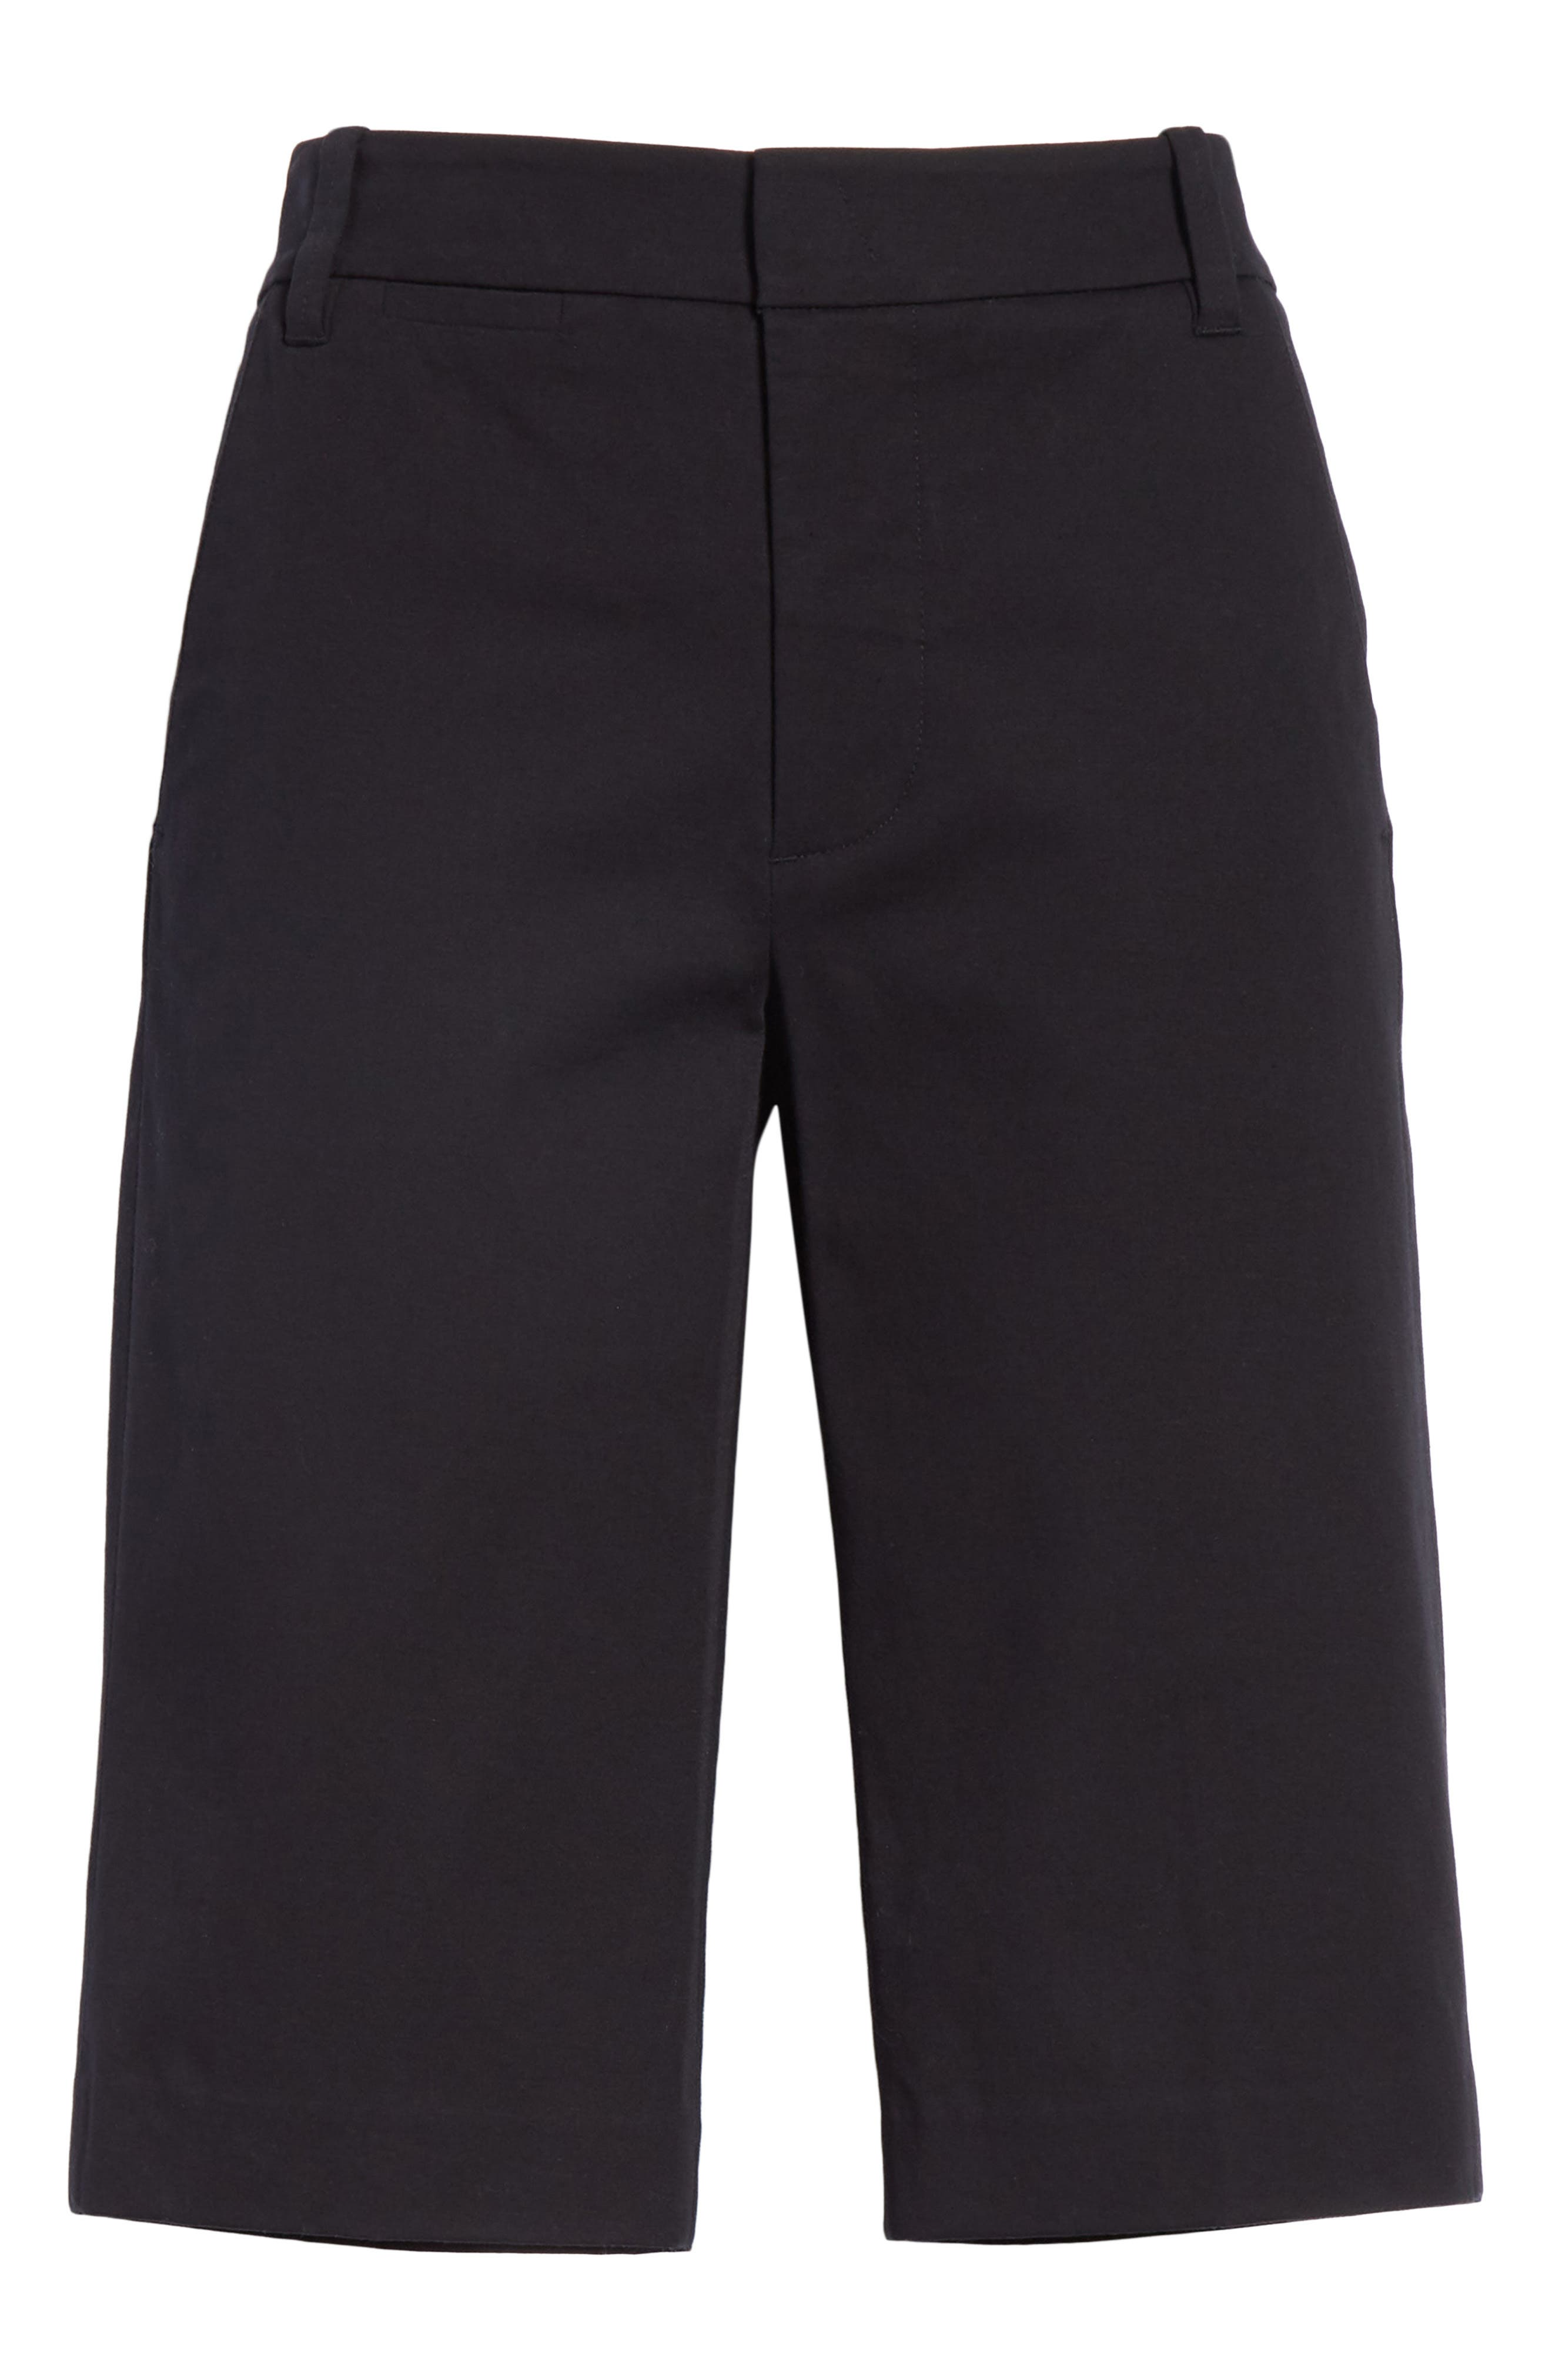 Bermuda Shorts,                             Alternate thumbnail 6, color,                             BLACK